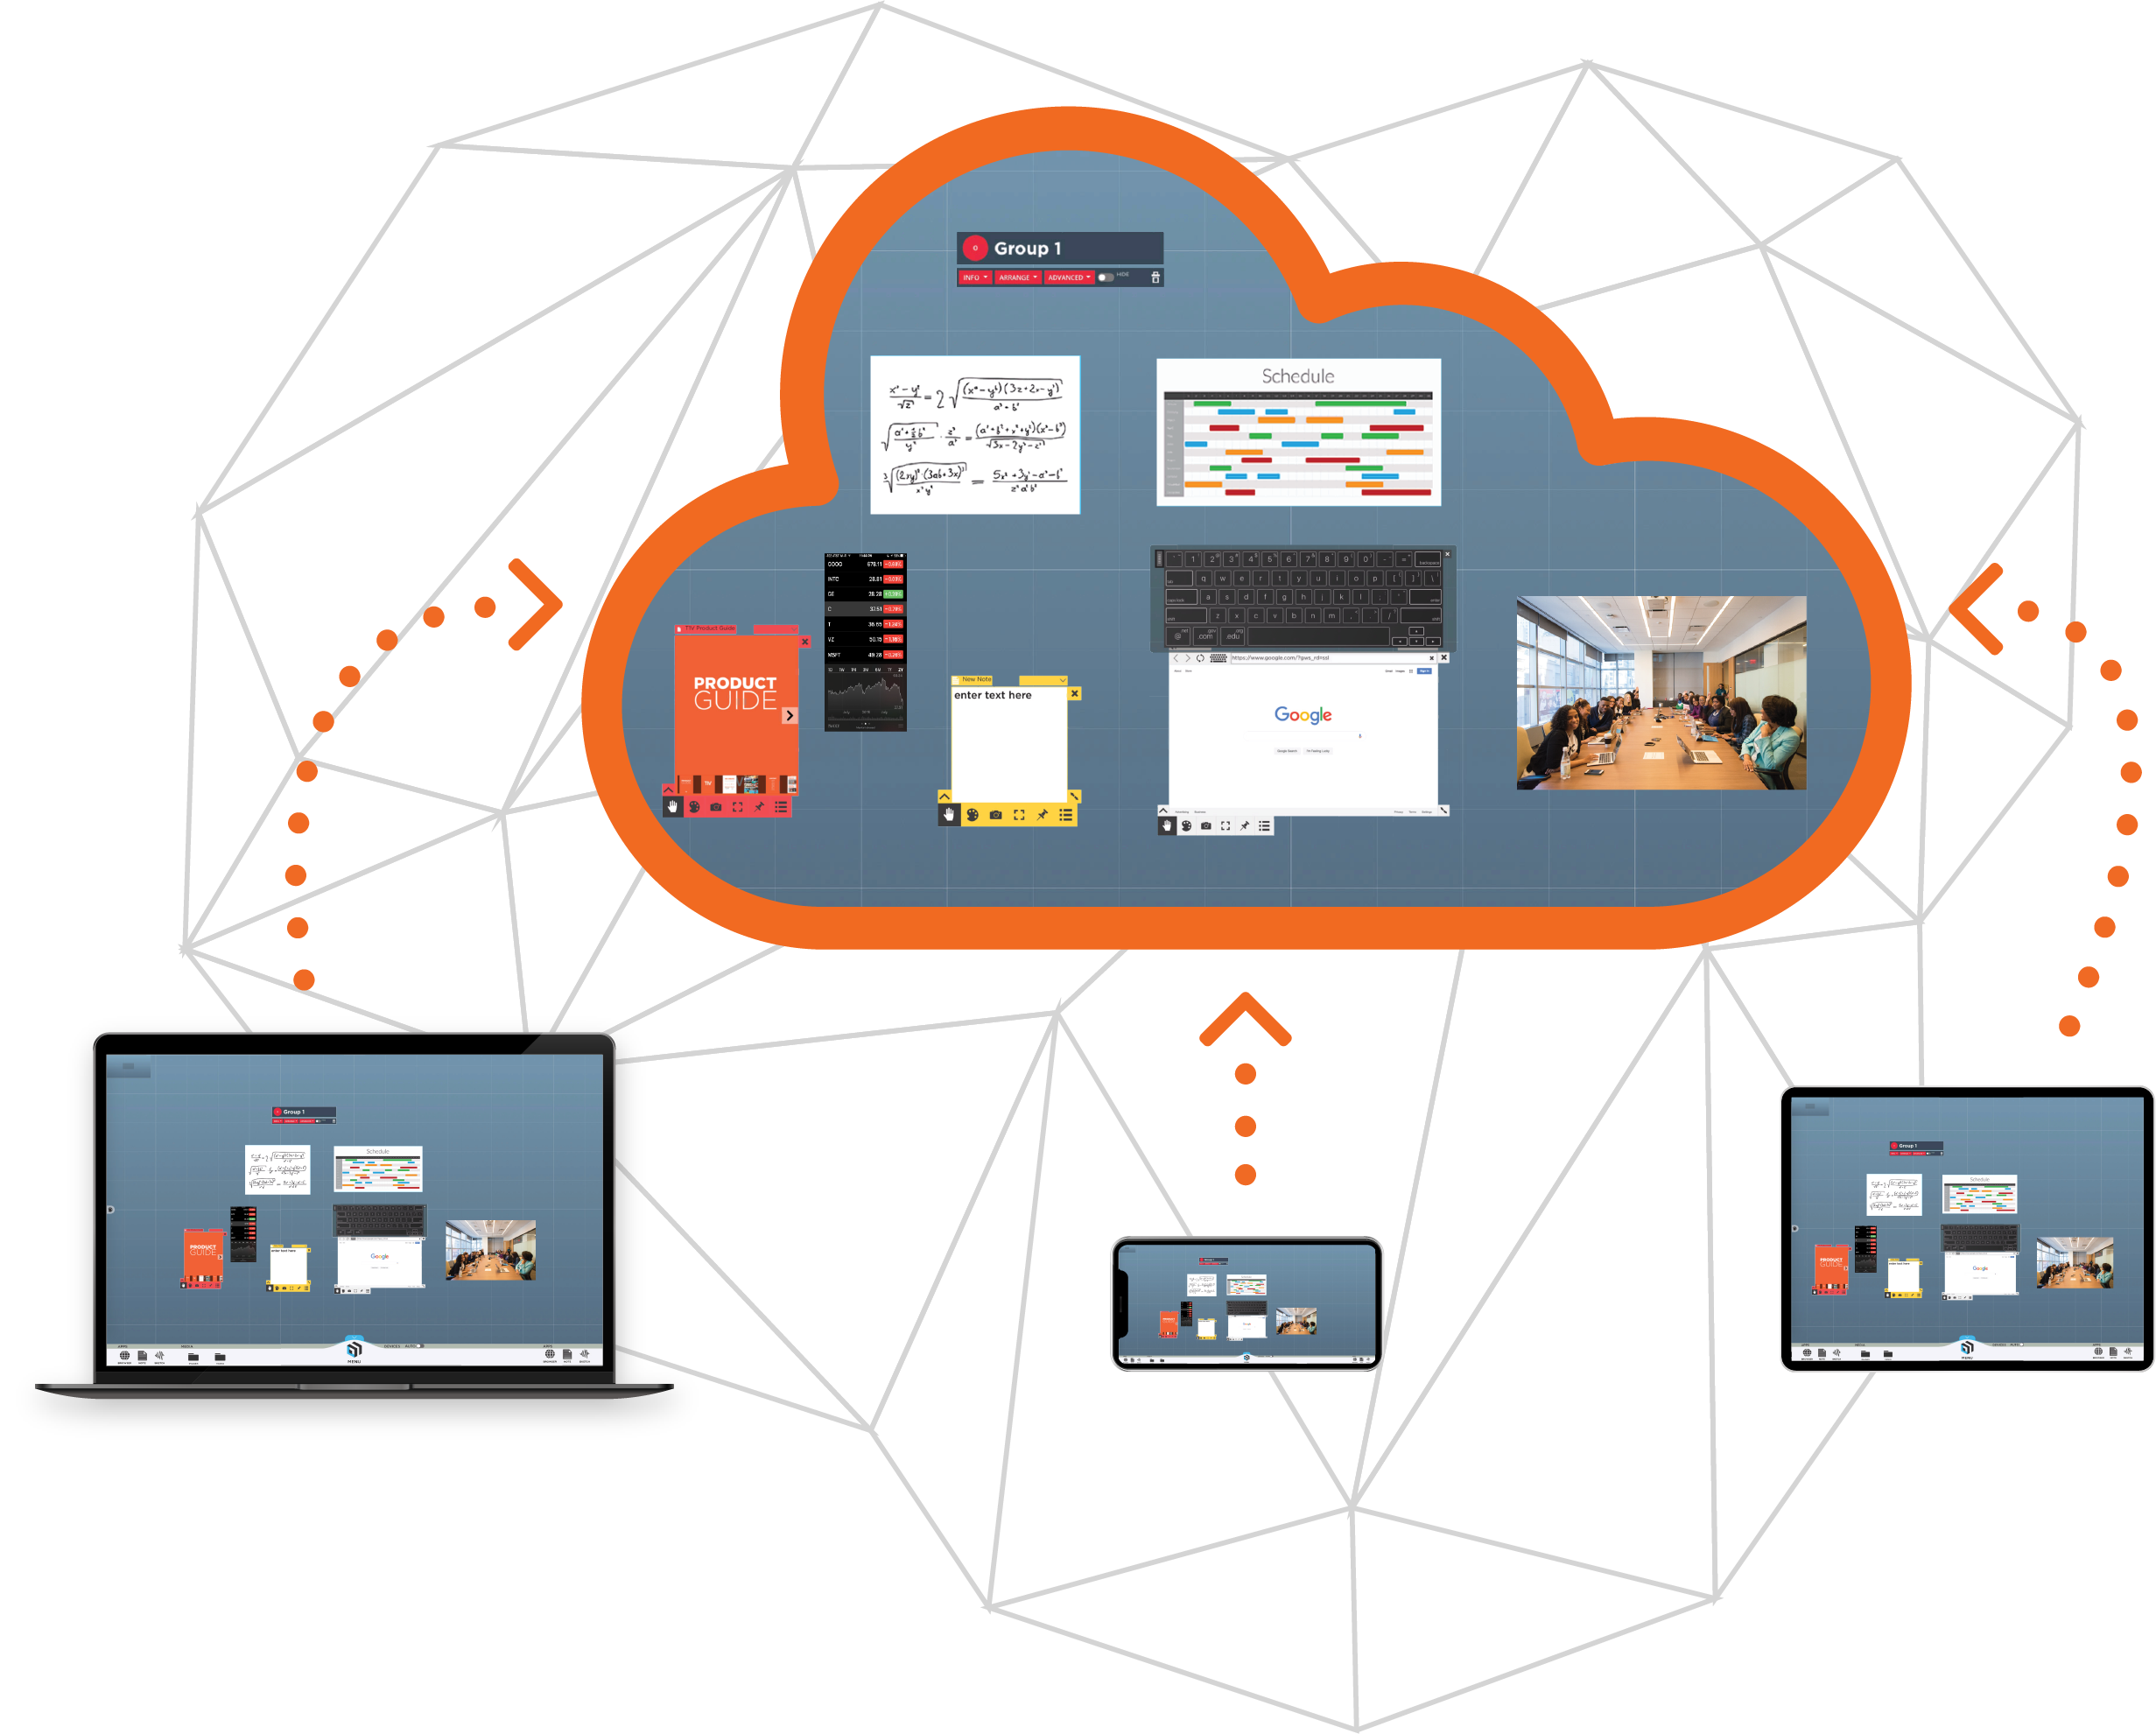 t1v-th-cloud-access-hero-graphic